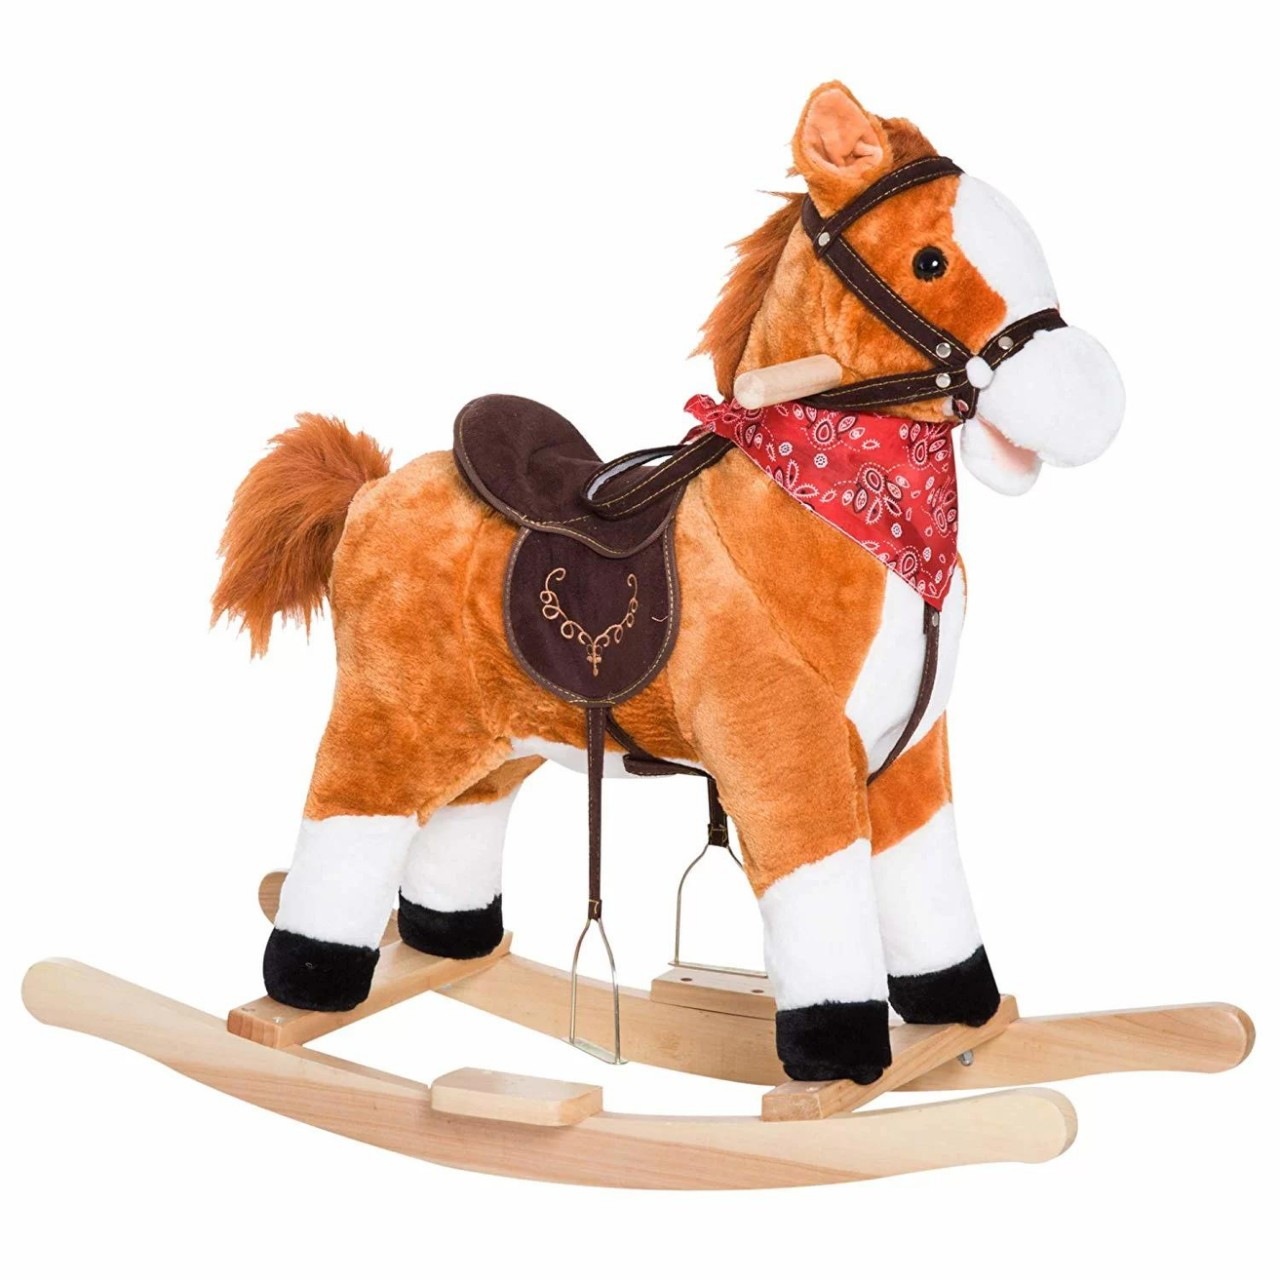 Riding Horse - For 1-3 years Baby